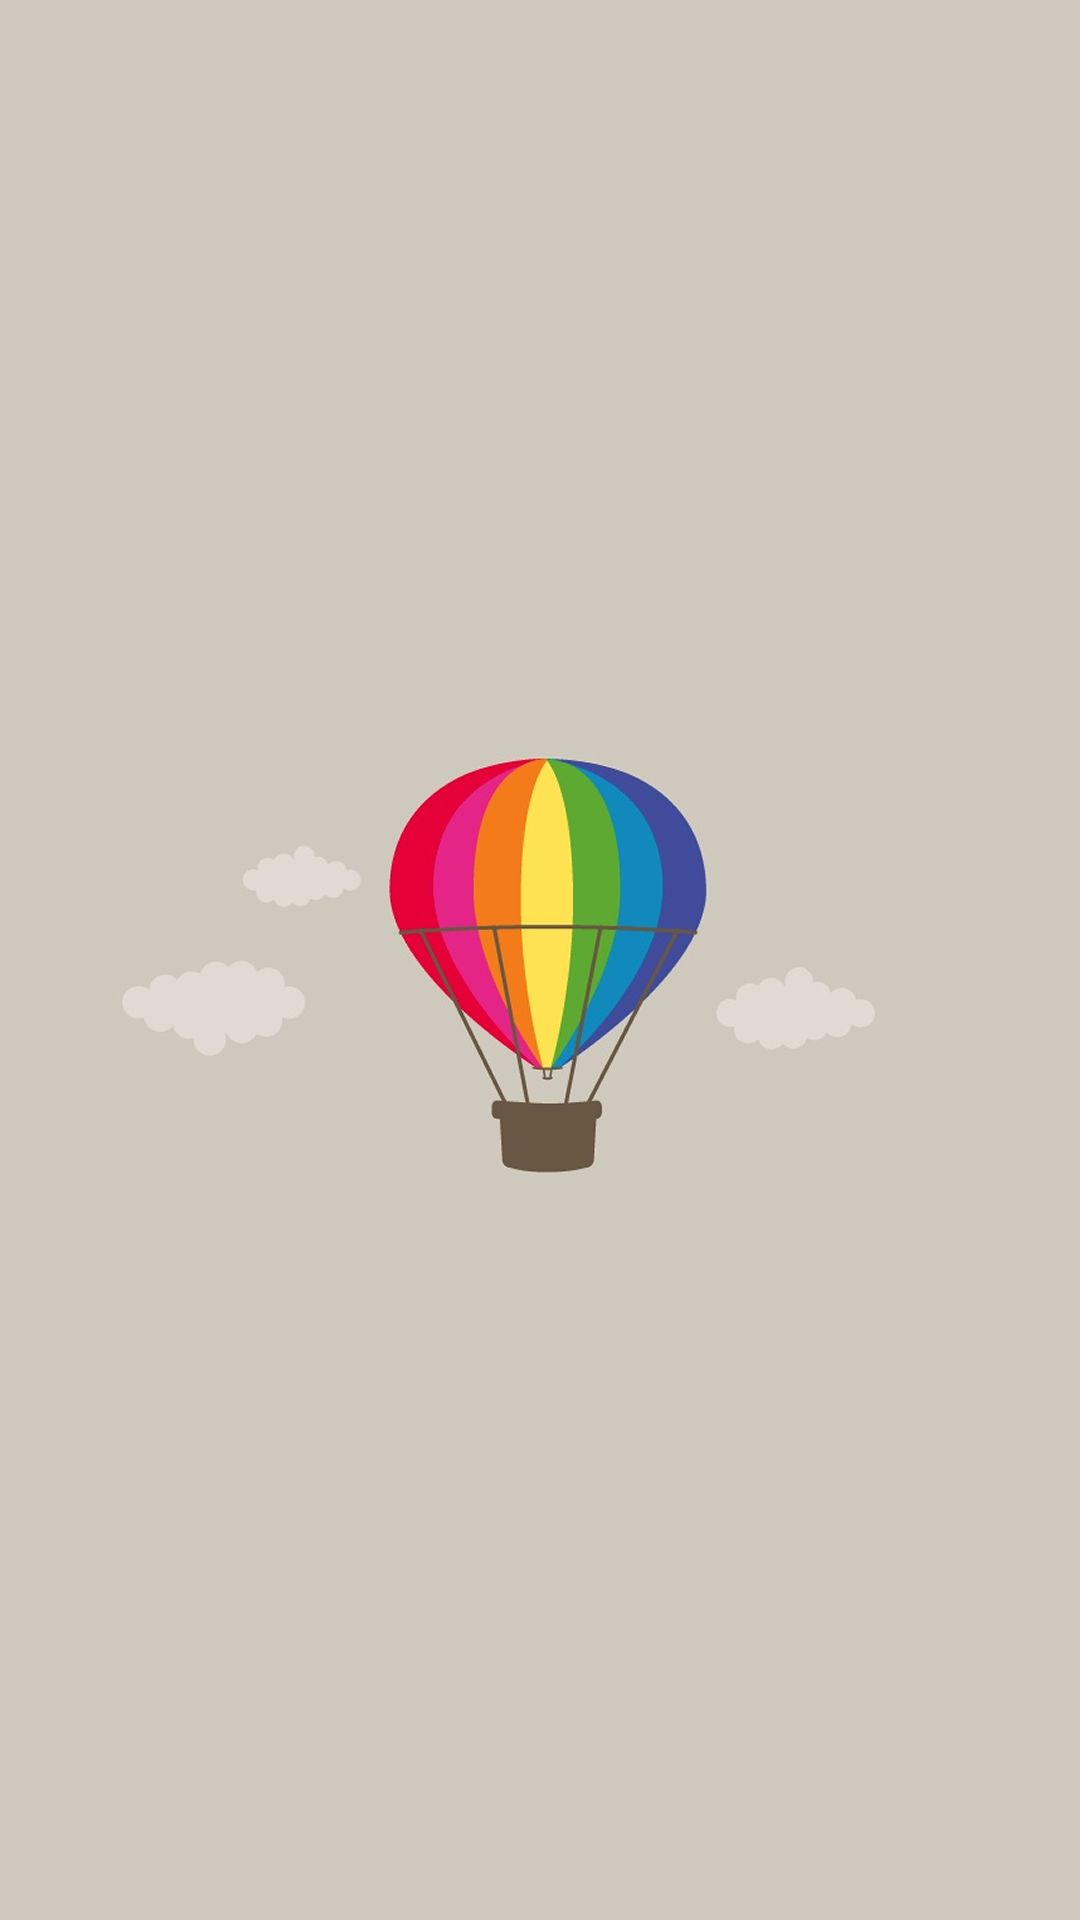 Simple Pure Hot Air Balloon Illustration Background Iphone